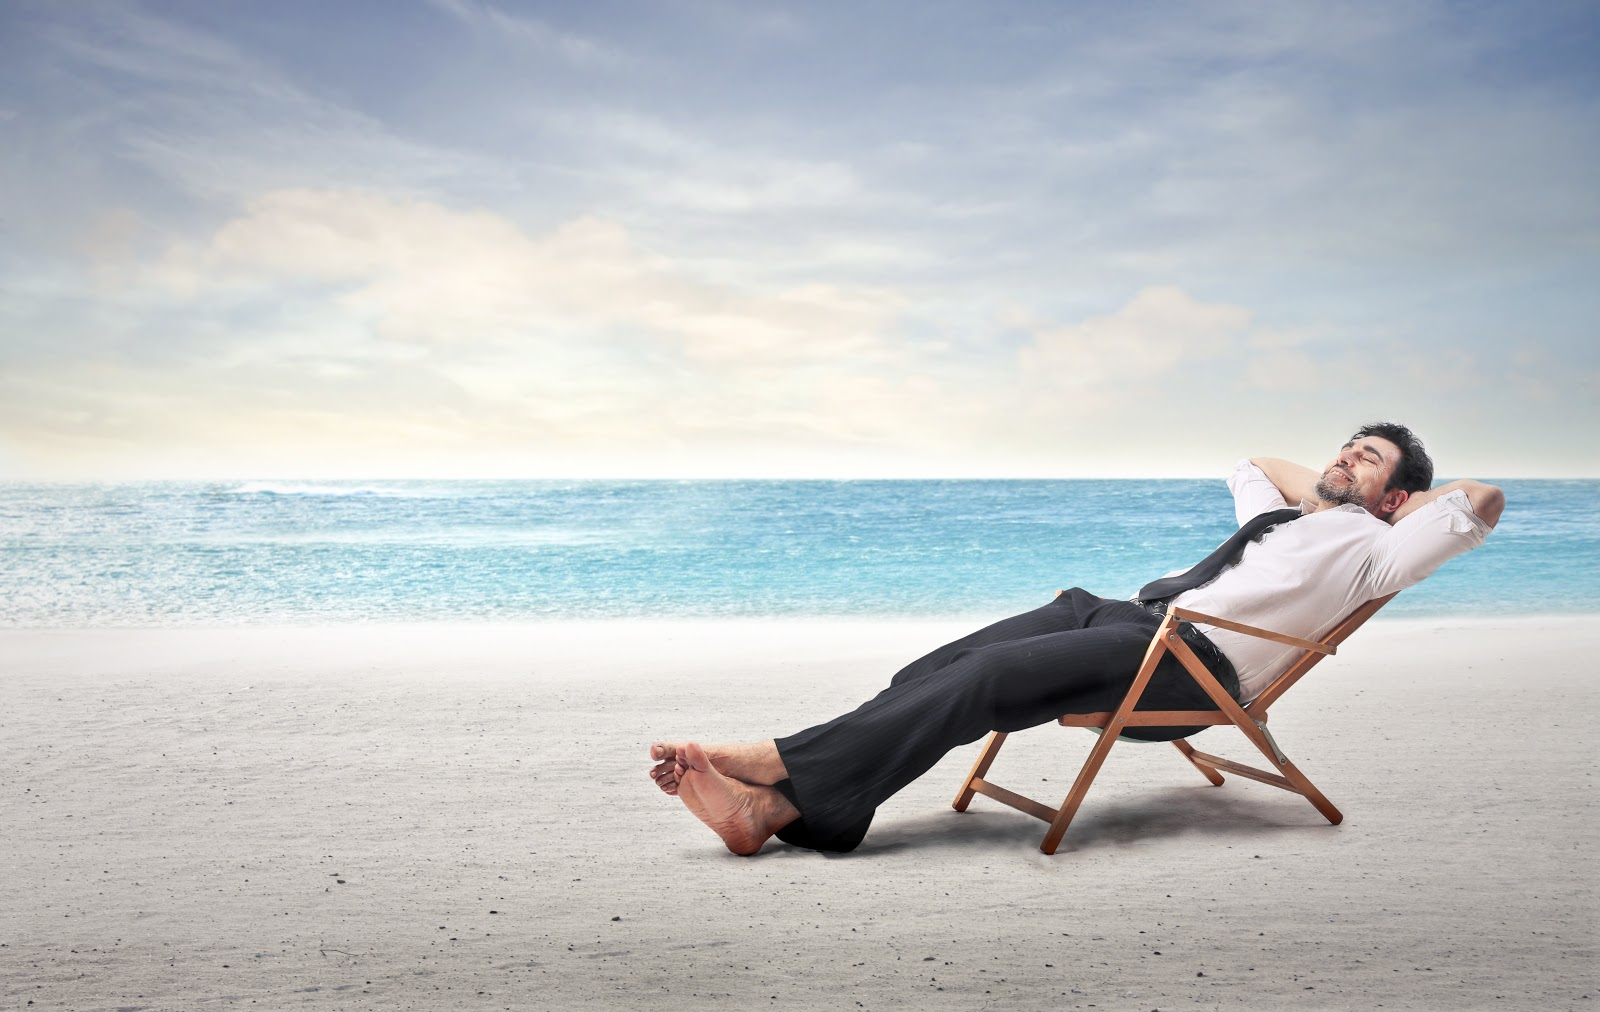 Man in business clothes in a lounge chair vacationing on the beach